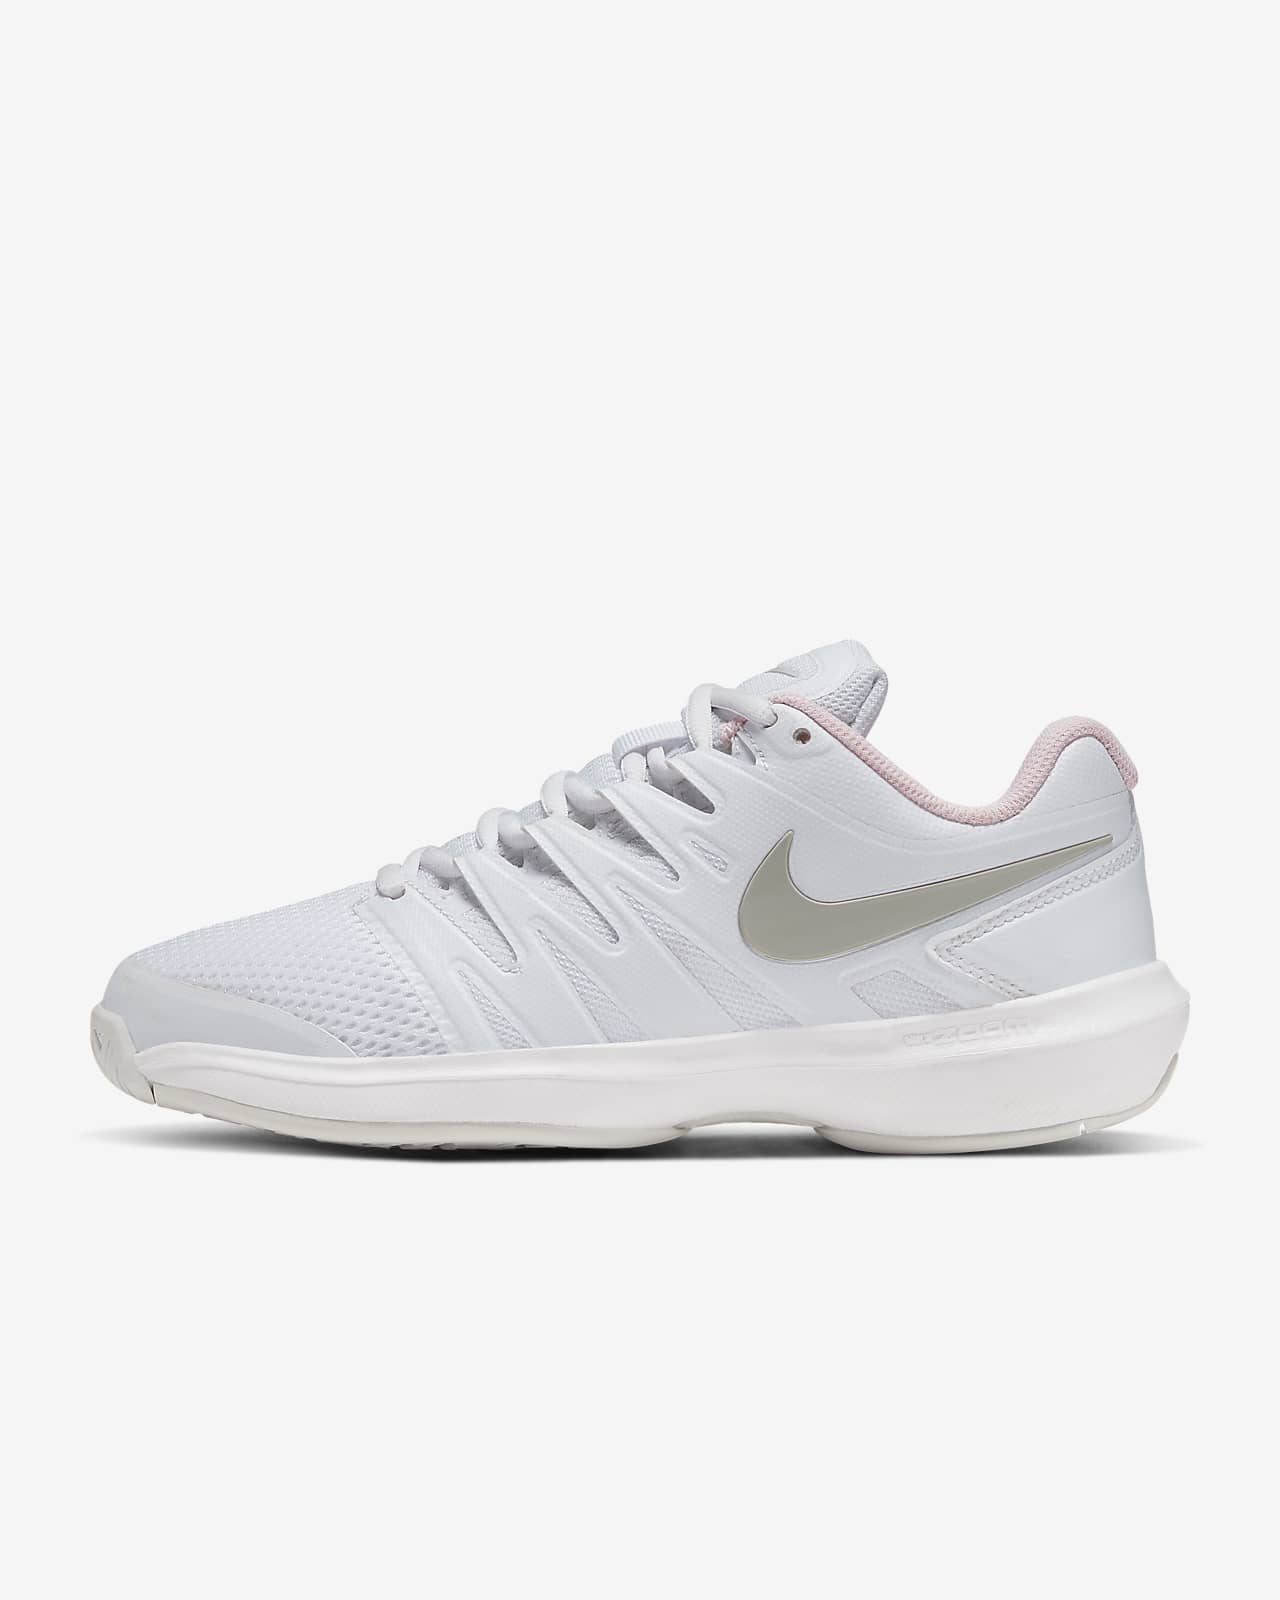 NikeCourt Air Zoom Prestige Tennisschoen voor dames